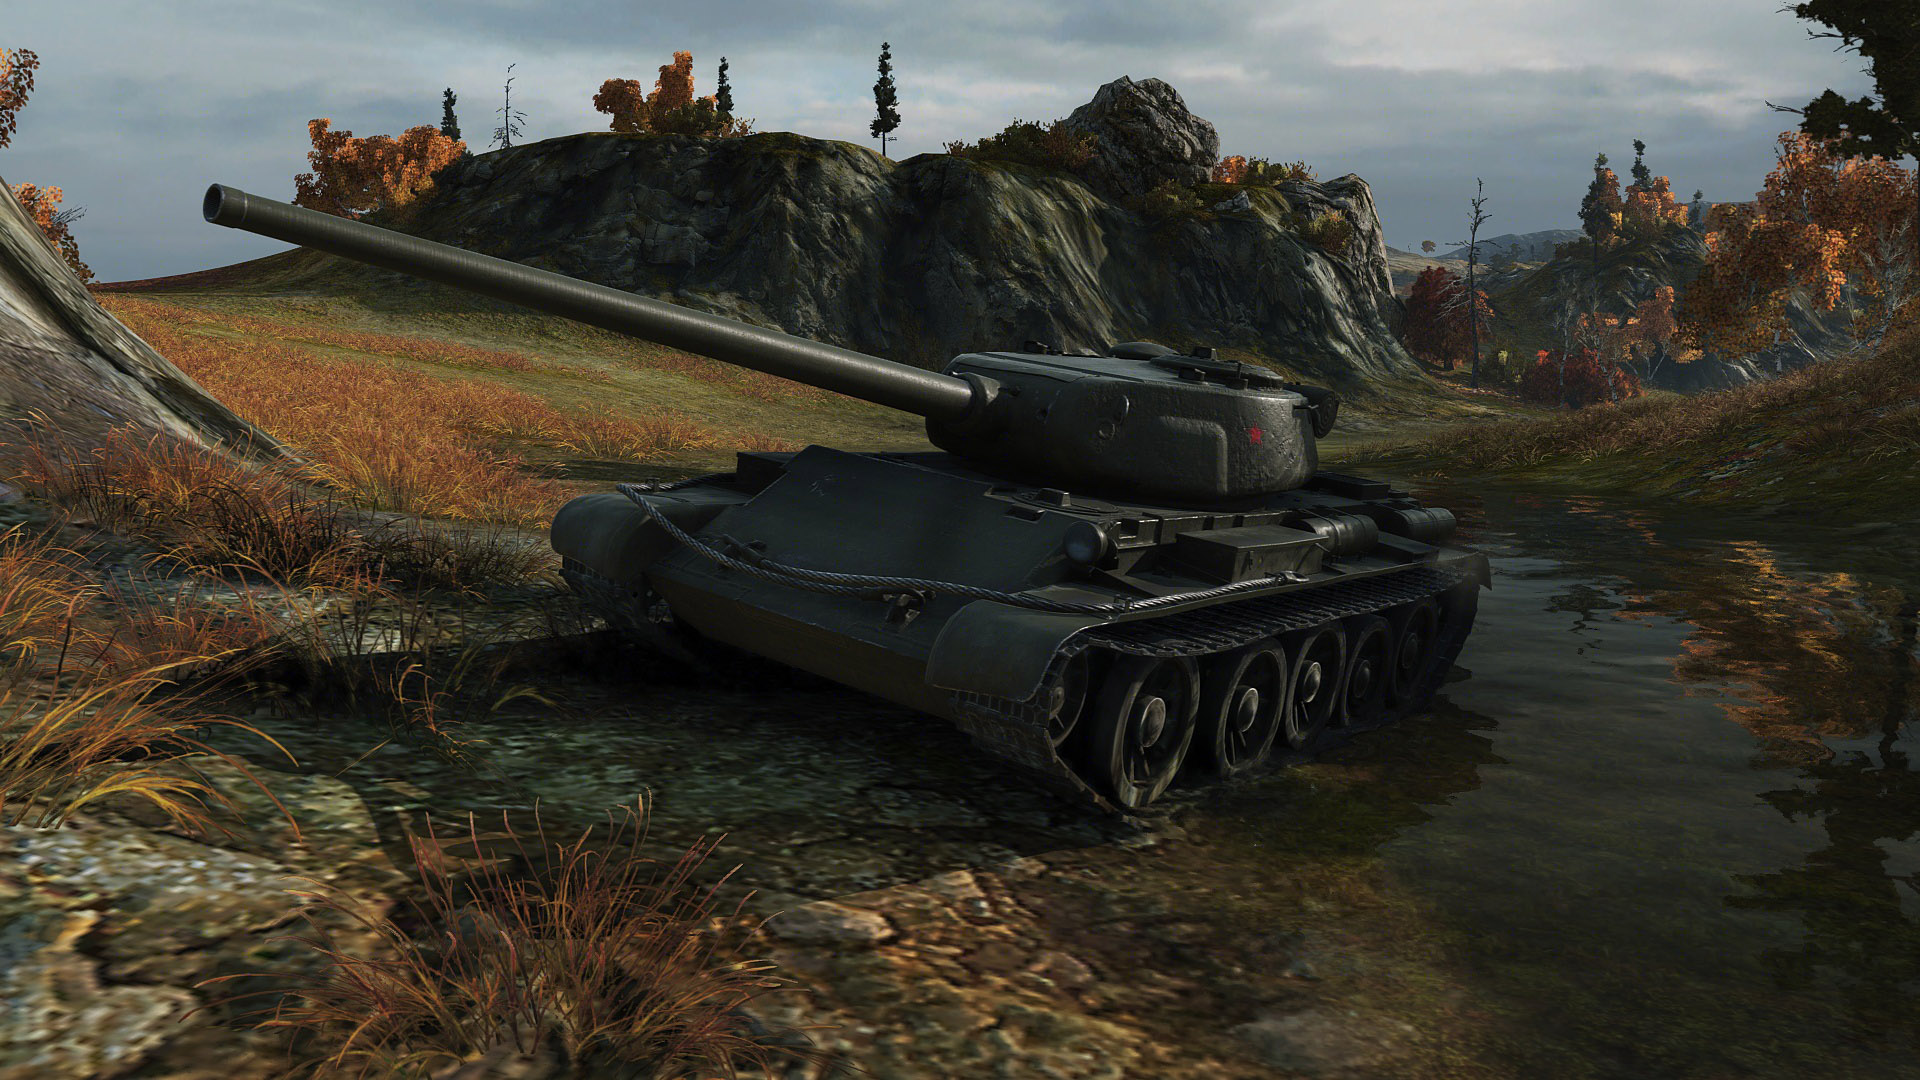 wot t 54 first prototype matchmaking Usually the guilty one is game built-in matchmaking system first tanks and upgrades recommended mods how to play advices t-34 t-34-85 kv-13 t-43 t-44 t-54 t.